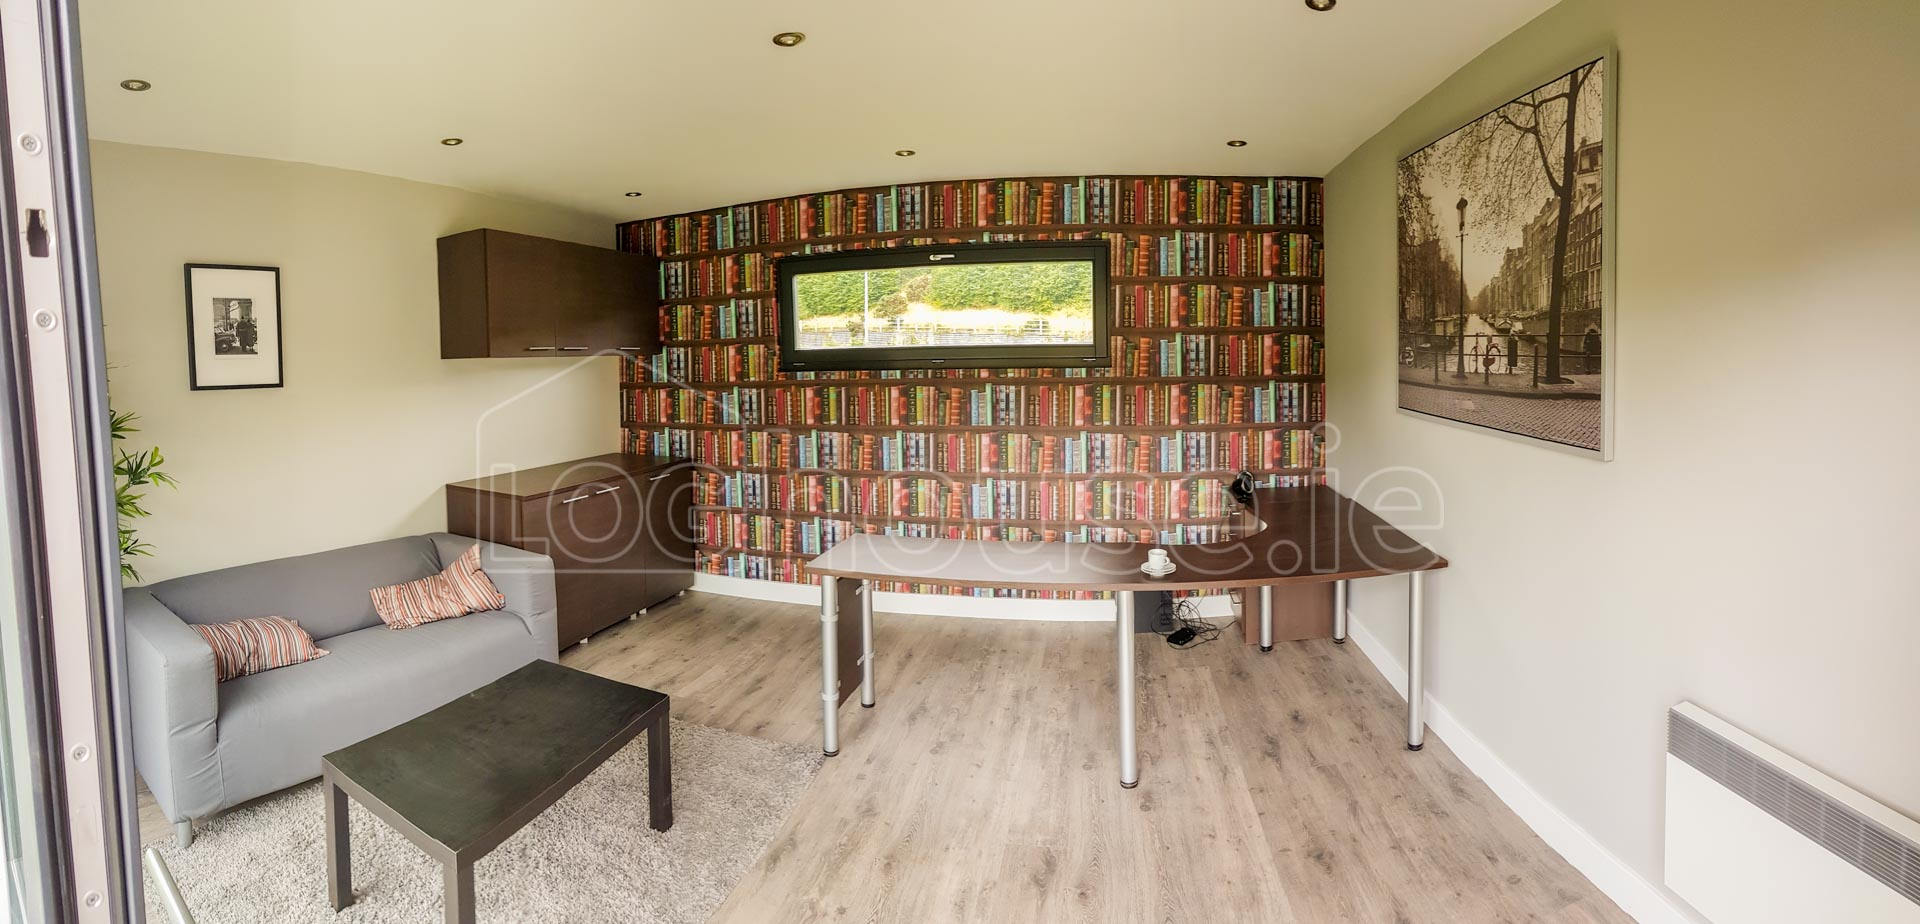 Garden Room ex-display 4.8m x 4.3 (SUPER INSULATED) - Loghouse.ie